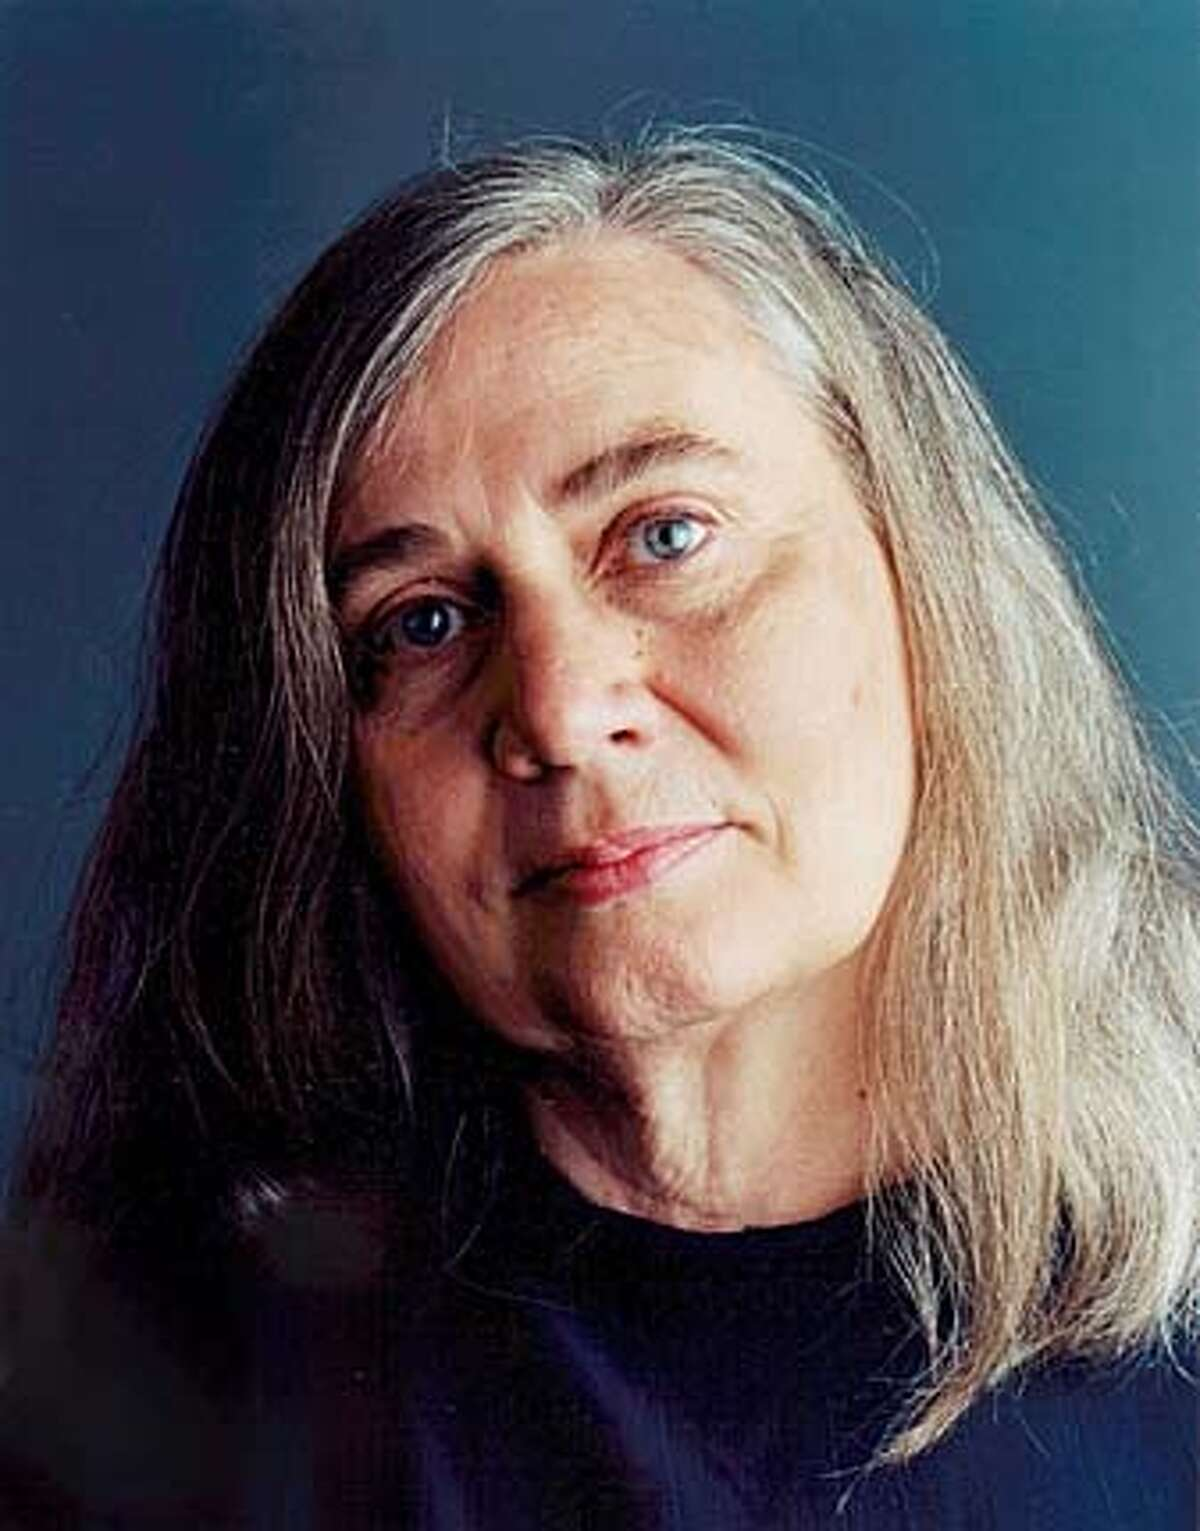 Photo of Marilynne Robinson, BookReview#BookReview#Chronicle#11-21-2004#ALL#Advance#e2#0422464106 BookReview#BookReview#Chronicle#11-21-2004#ALL#Advance#e2#0422464106